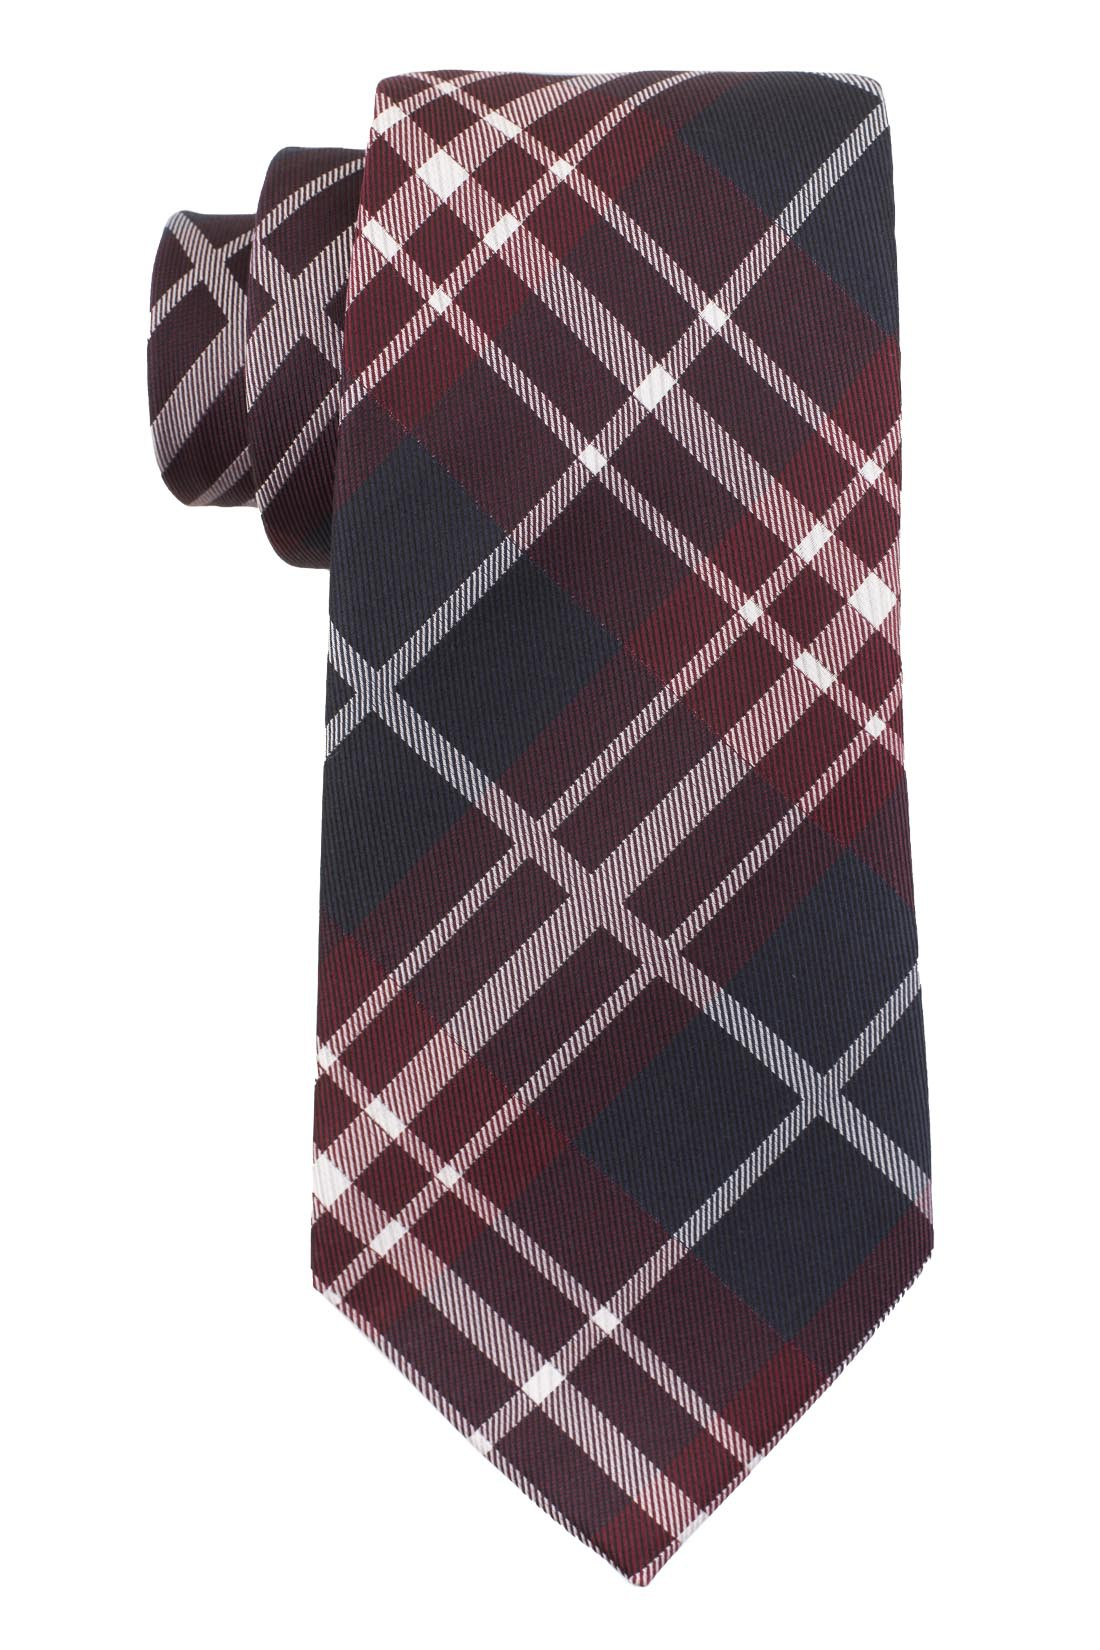 Parker Plaid Red and Blue 100% Silk Necktie